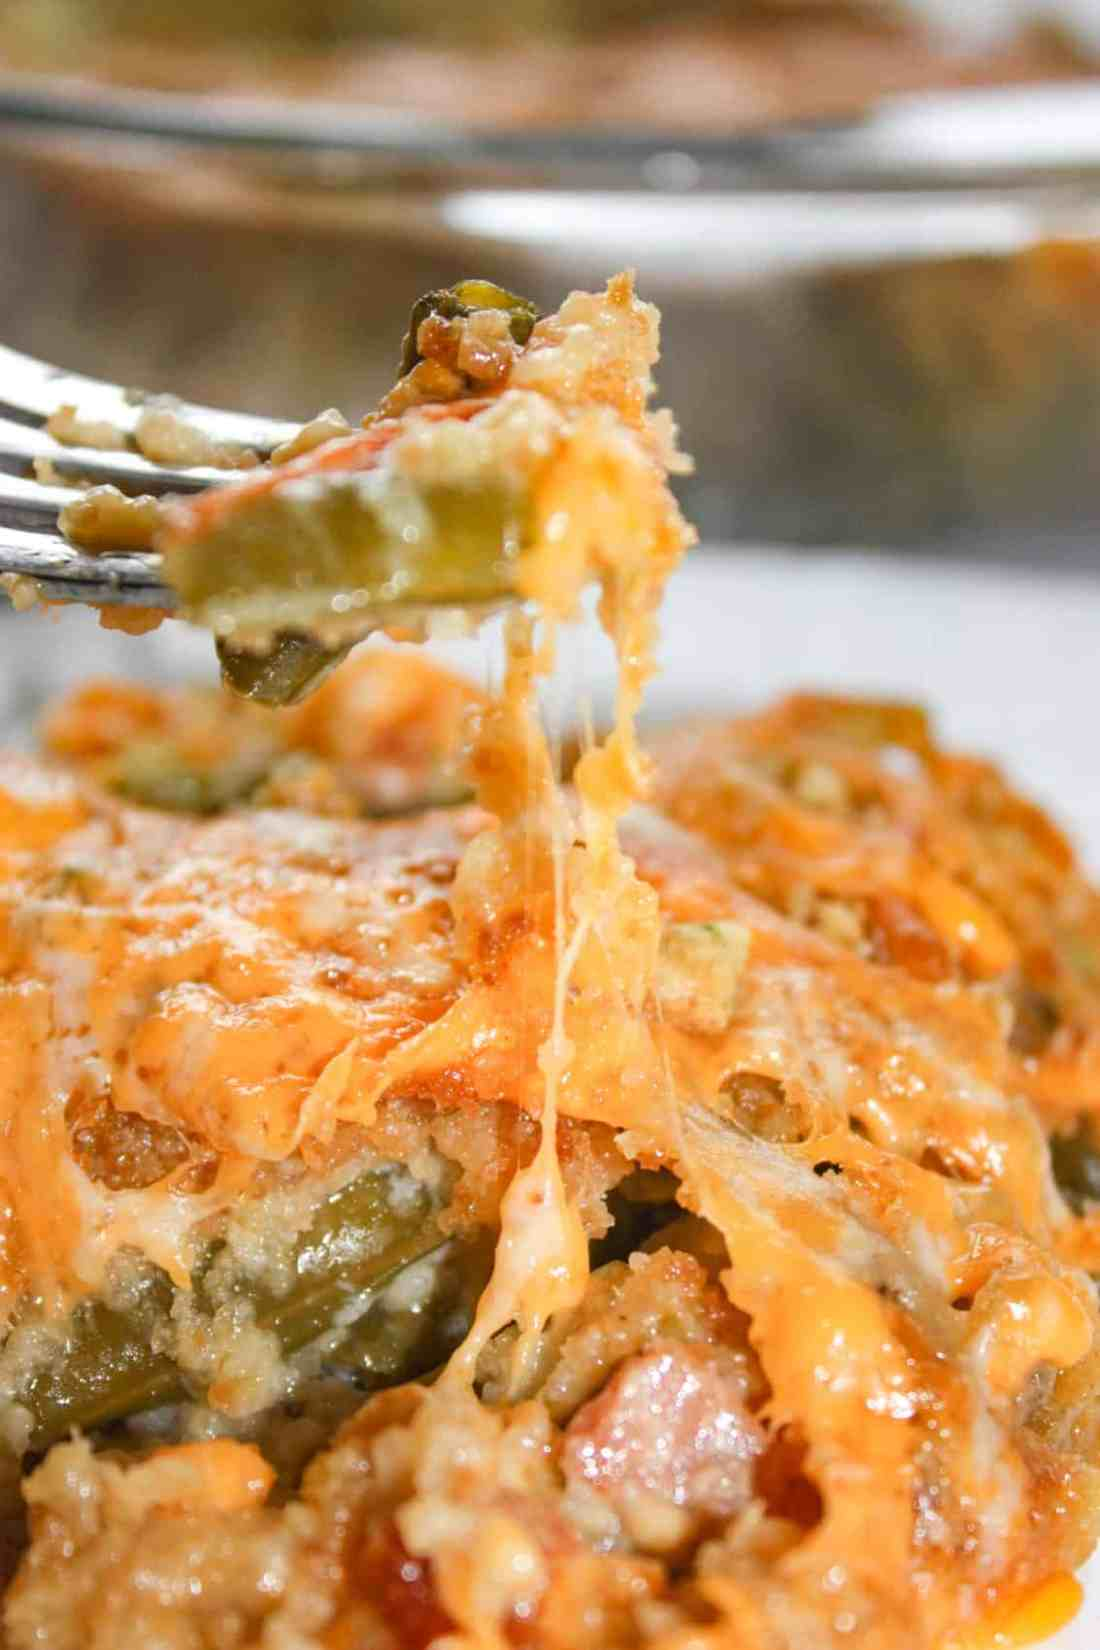 Green Bean Casseroles are a traditional side dish in many homes.  This Cheesy Garlic Green Bean Casserole is a flavourful gluten free variation that will be sure to please the palates of both family and guests.